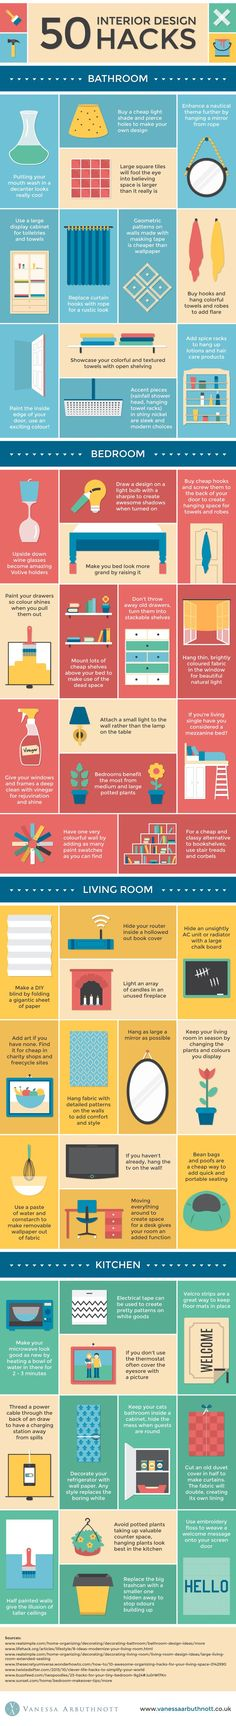 50 interior design hacks http://ibeebz.com